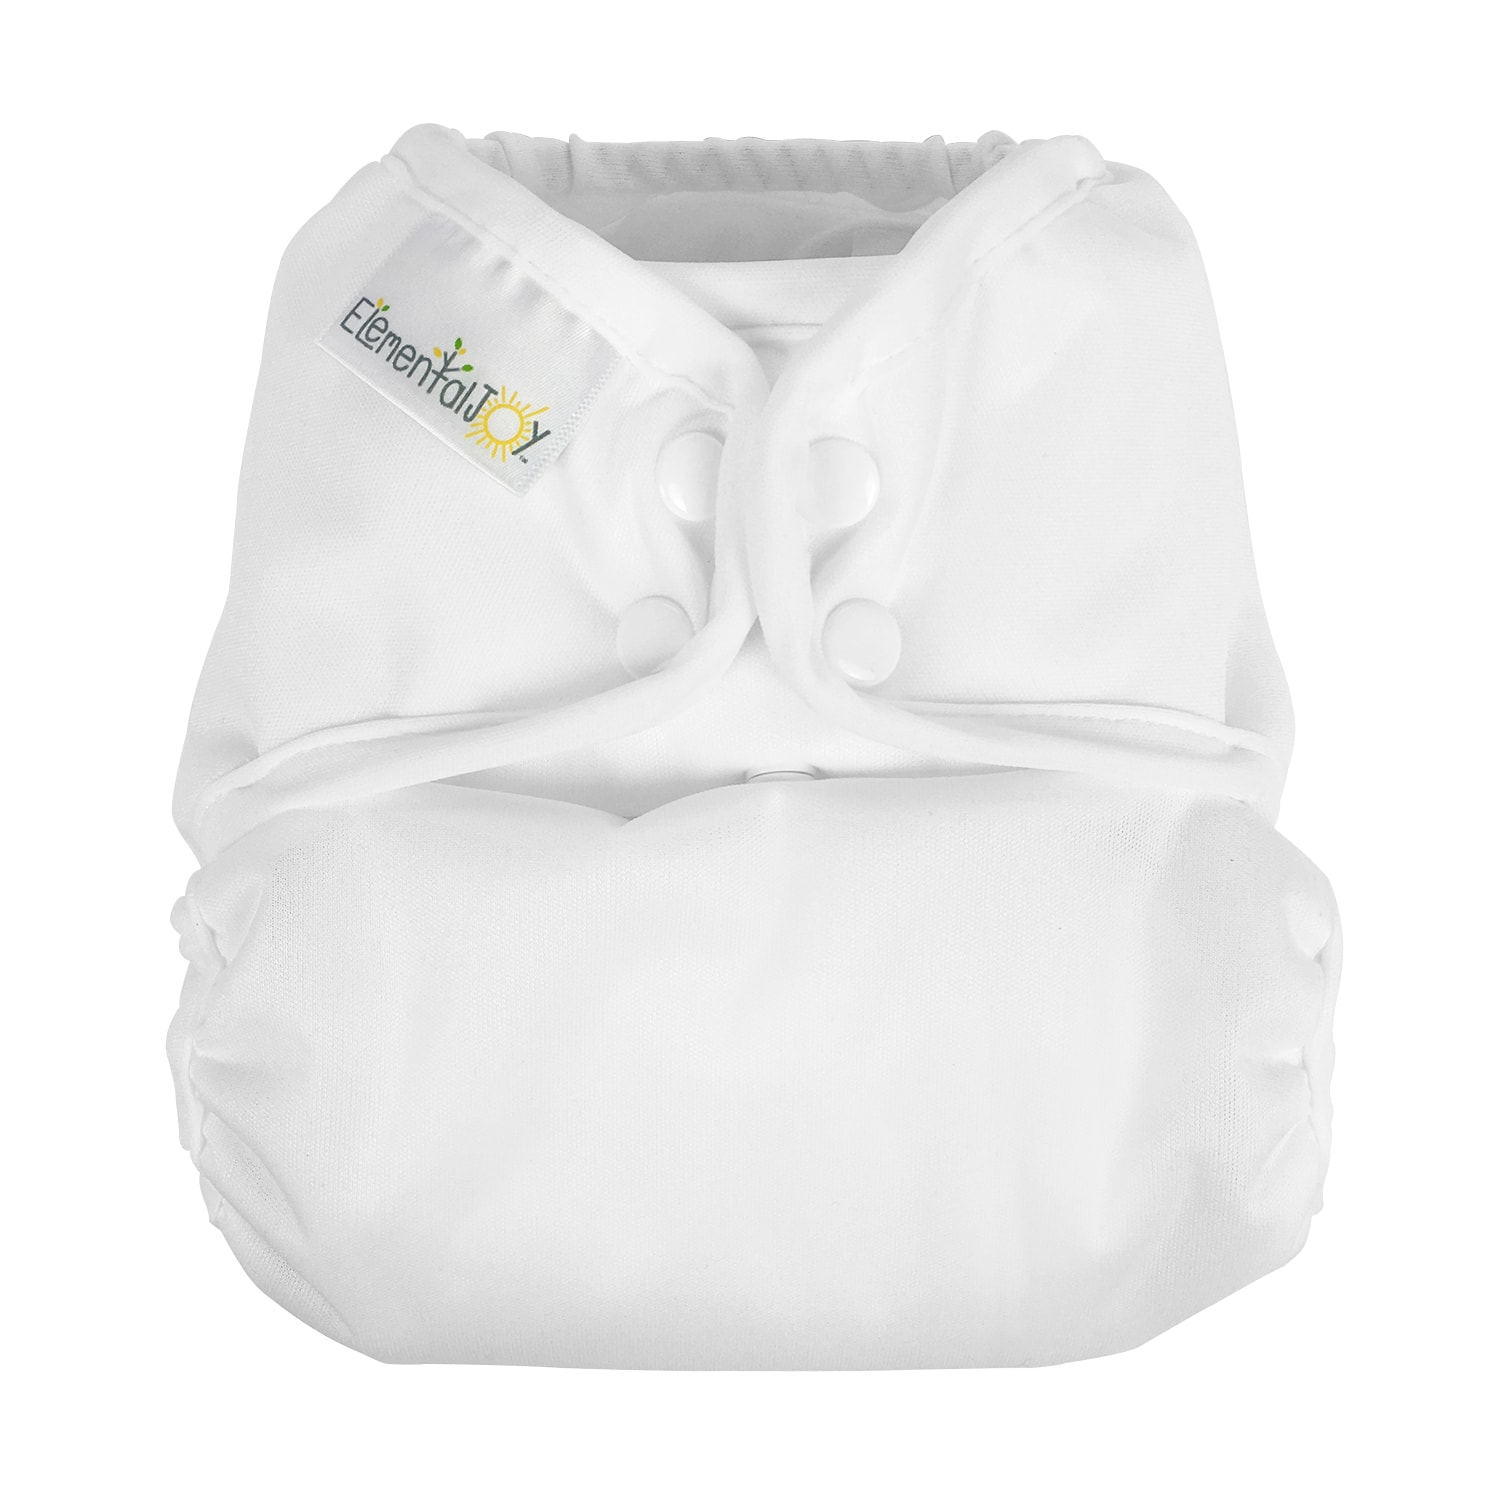 Elemental Joy Pocket Cloth Diaper - White